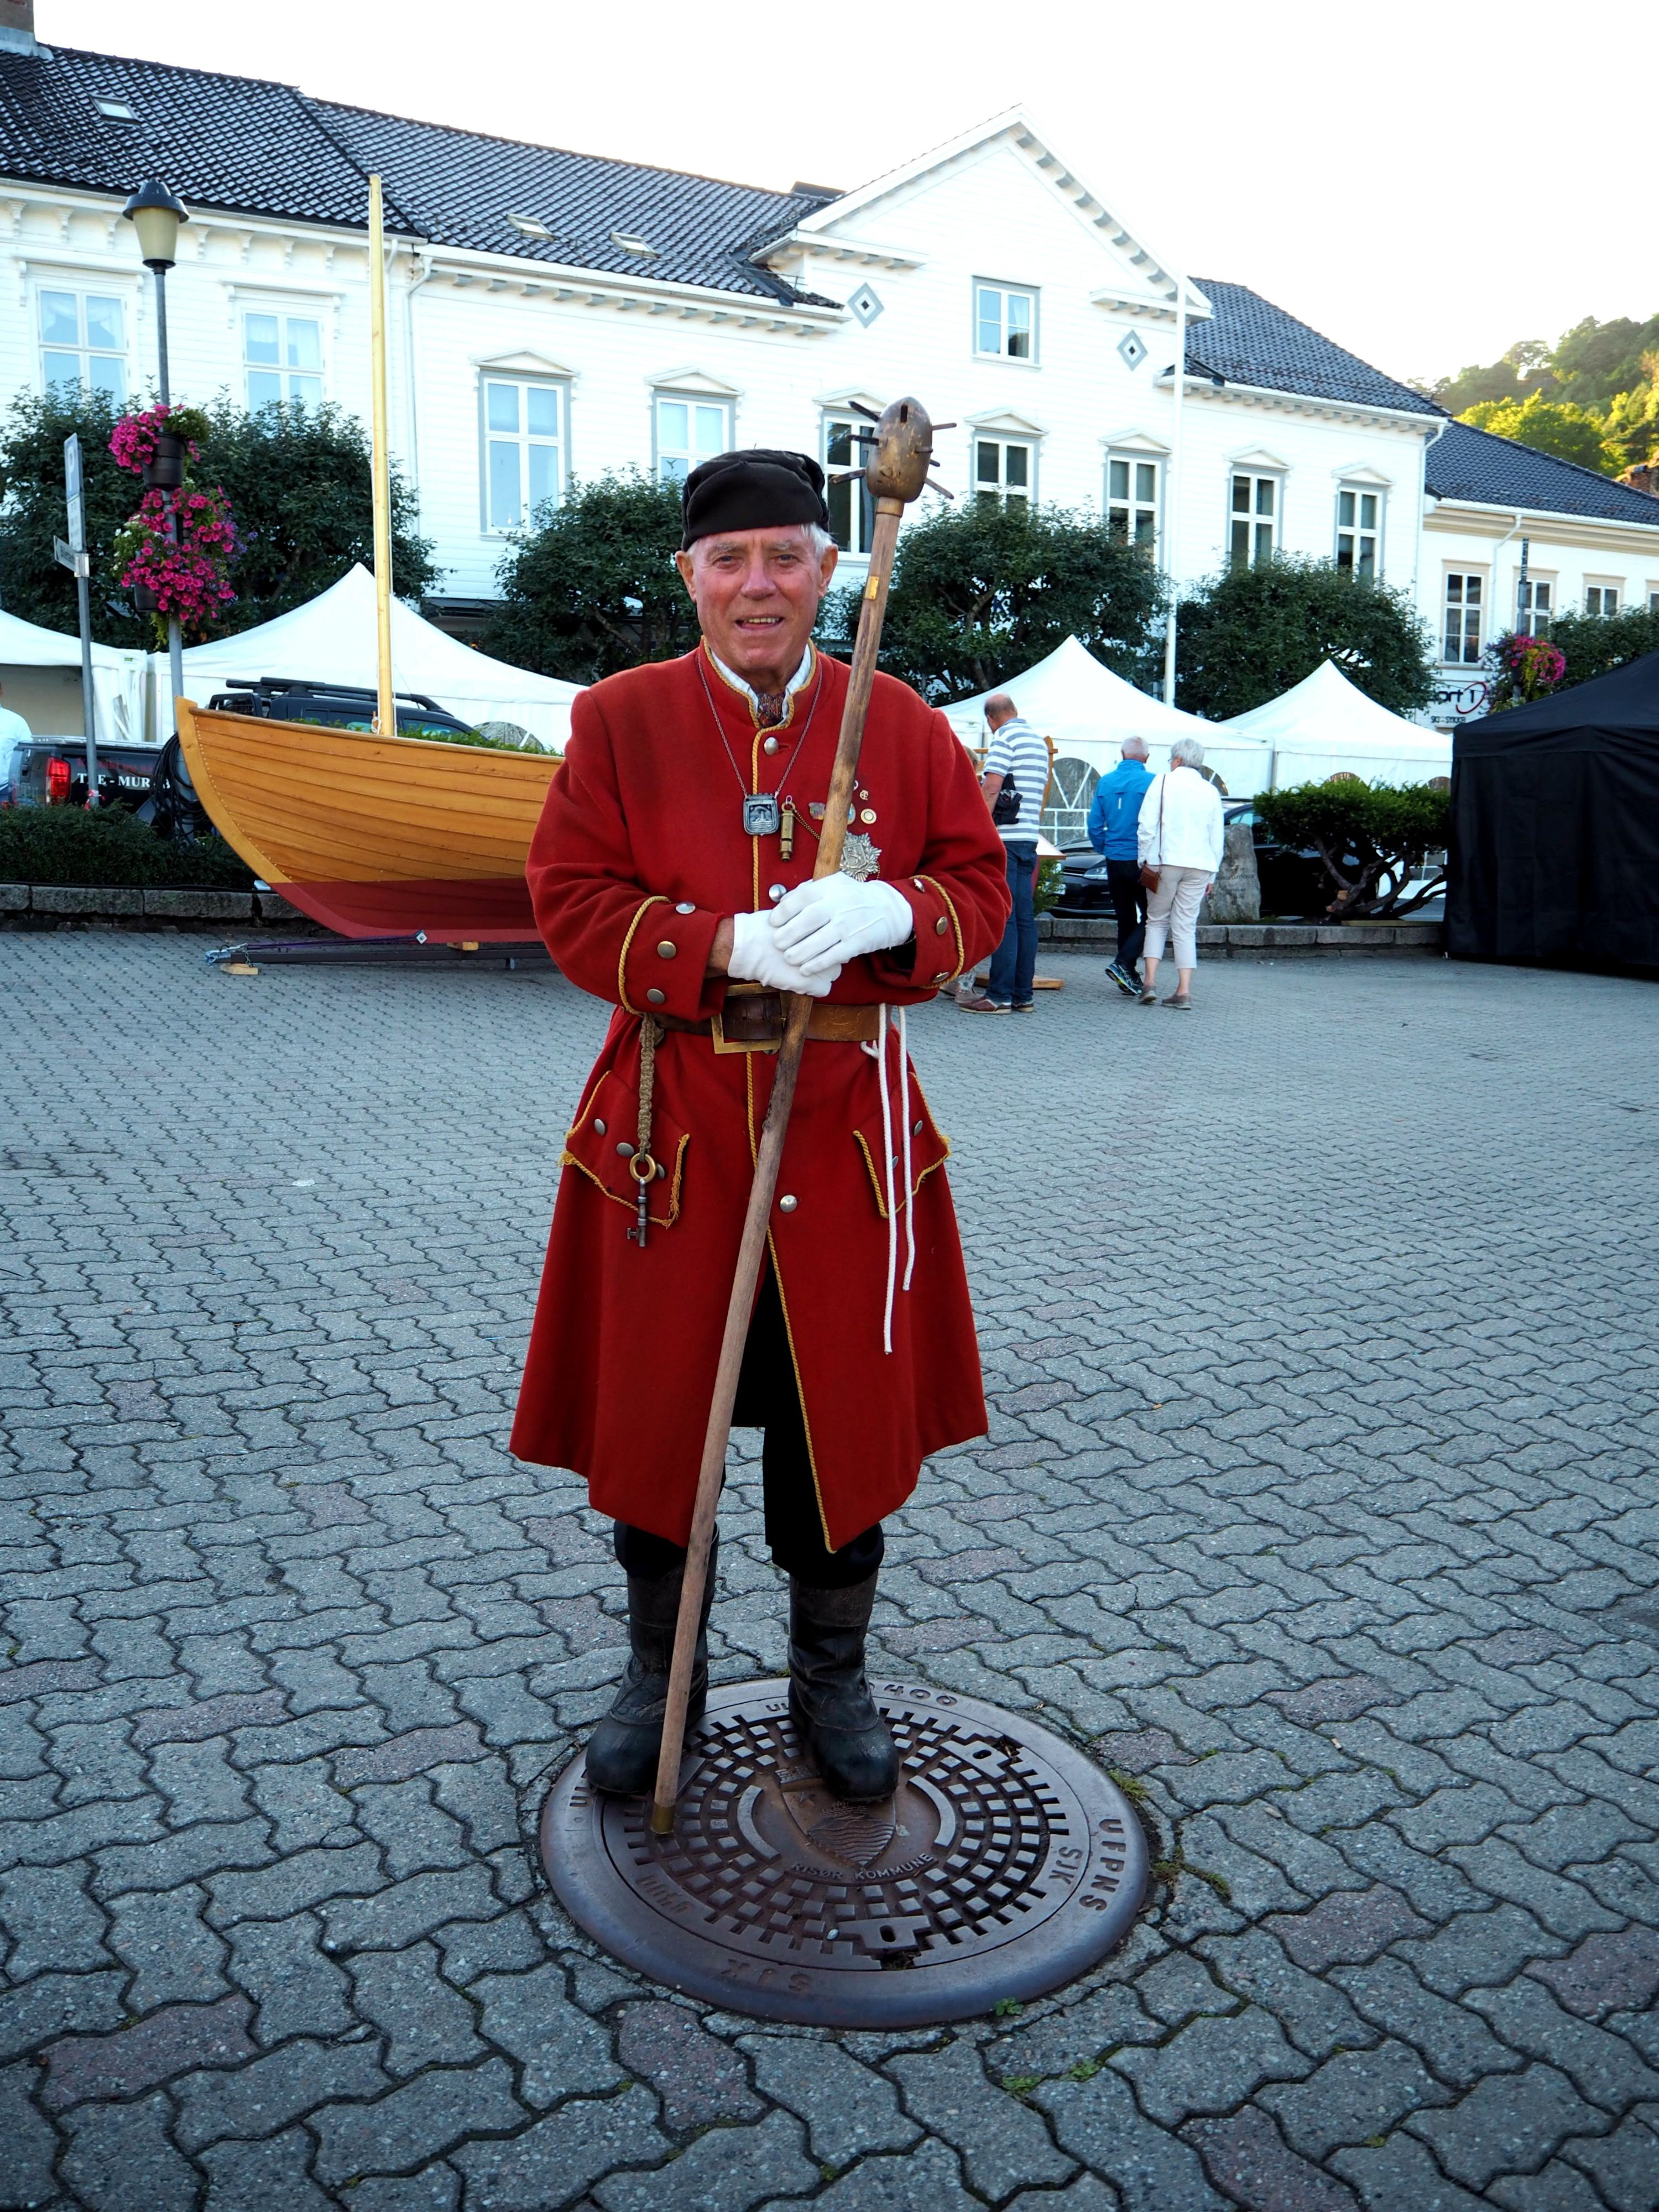 Our tour guide, Tomas, dressed as a traditional guard